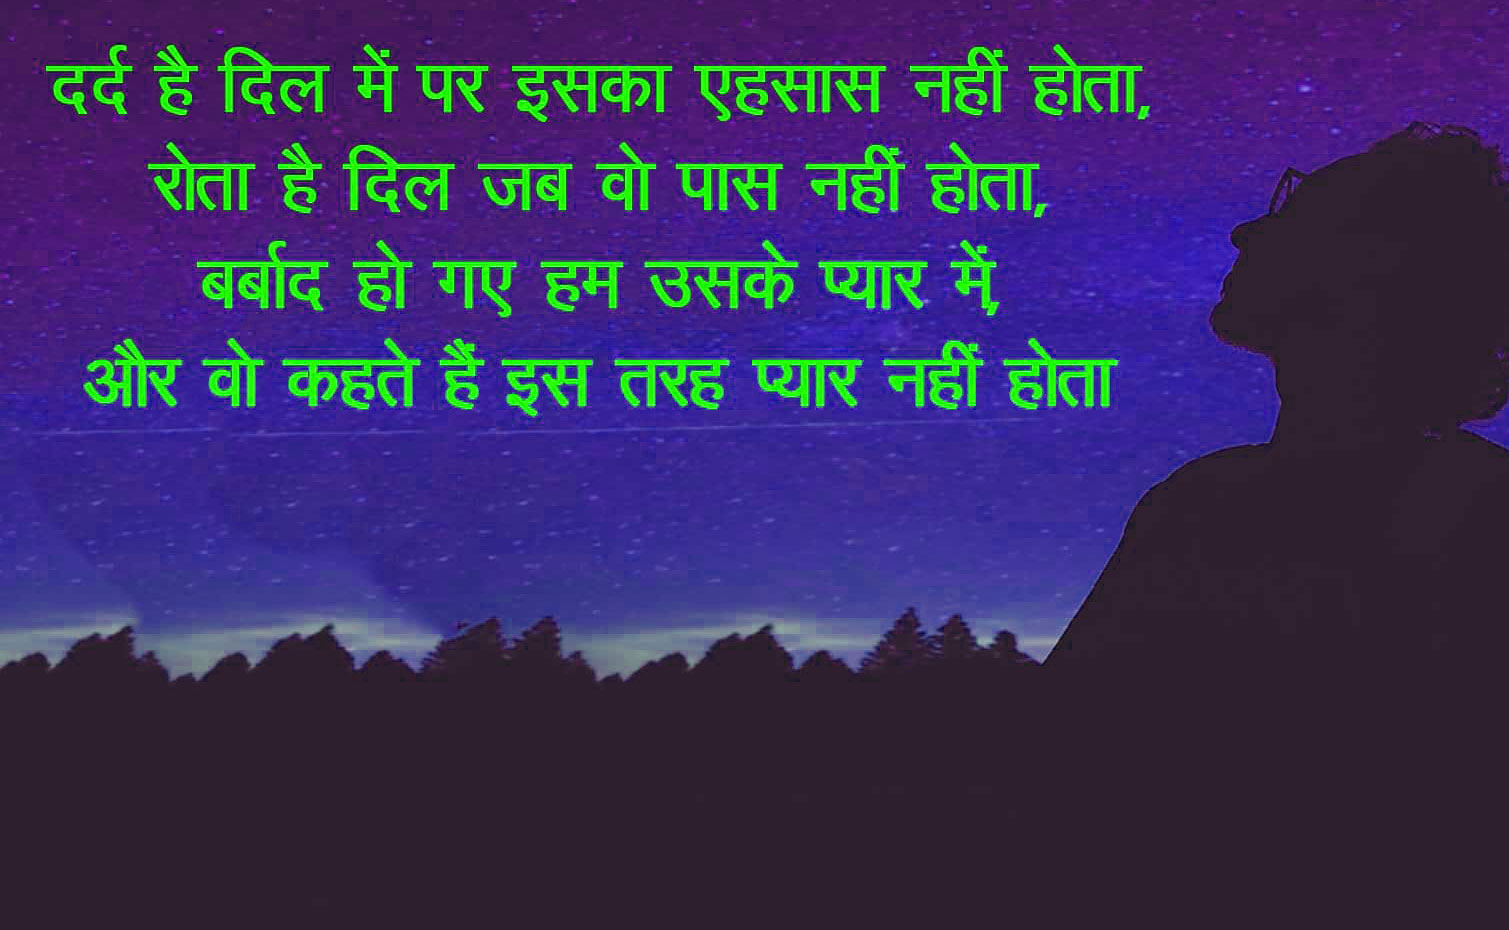 Hindi-Bewafa-Shayari-Images-44